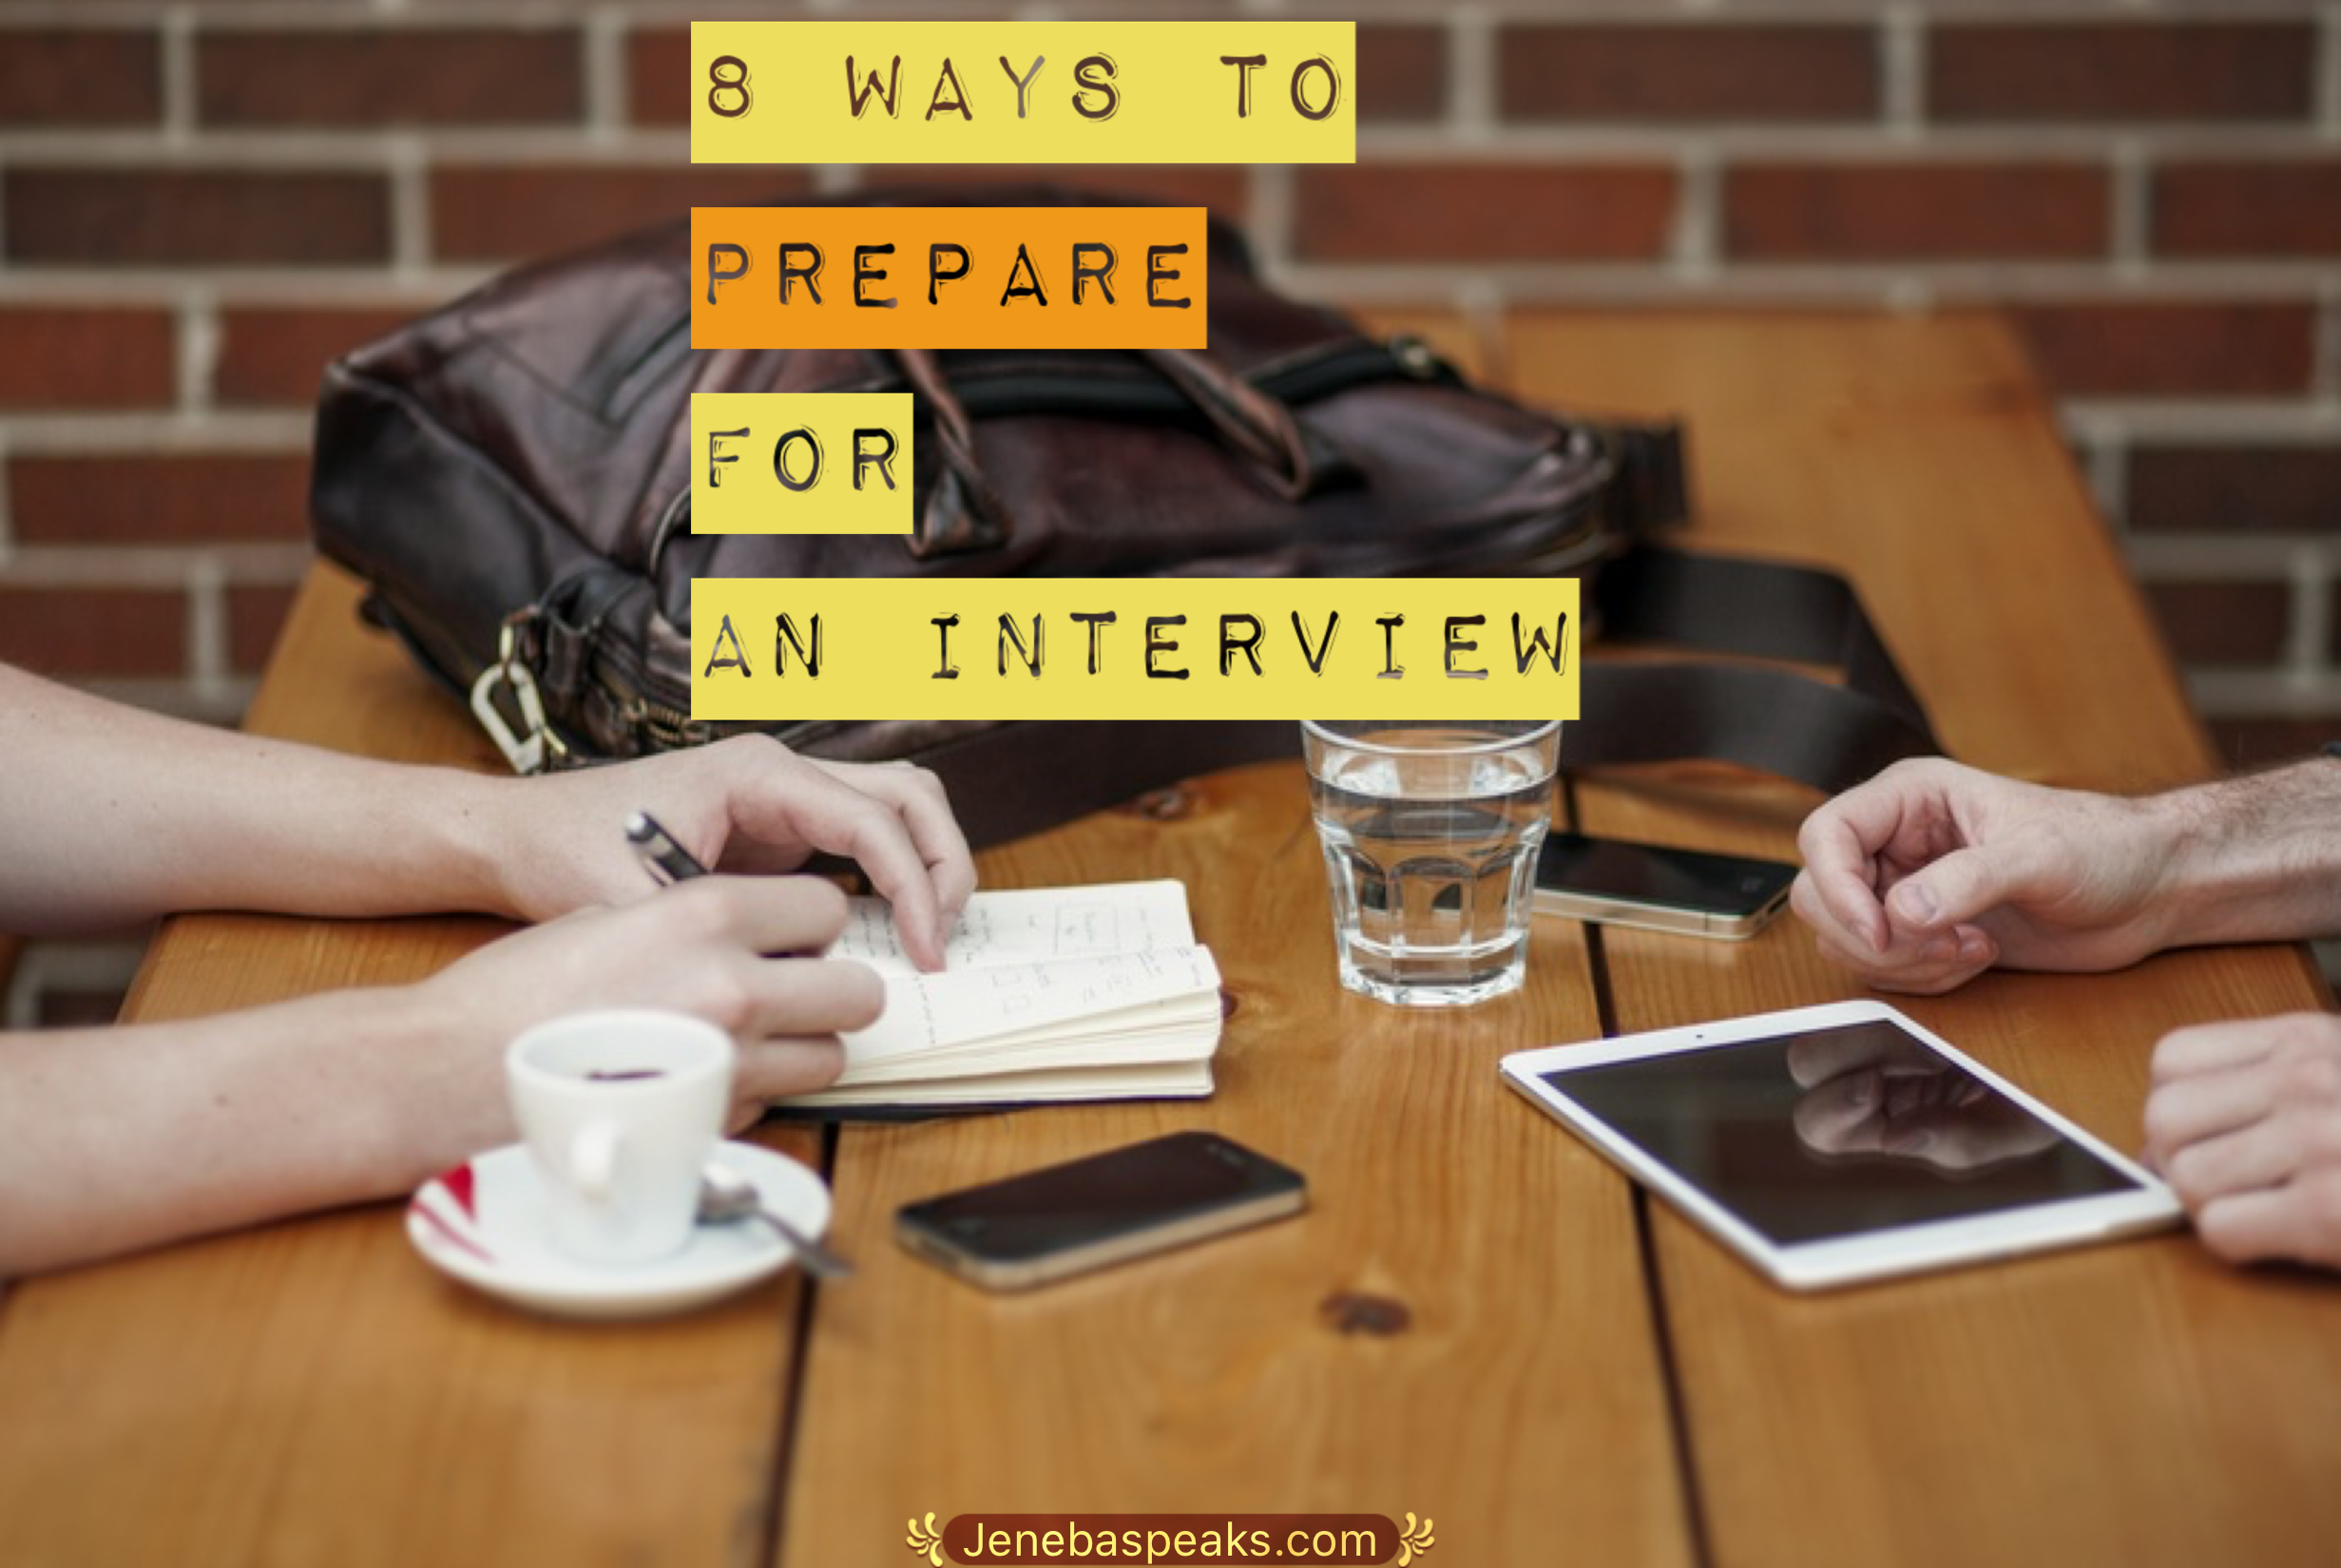 8 Ways To Prepare For An Interview